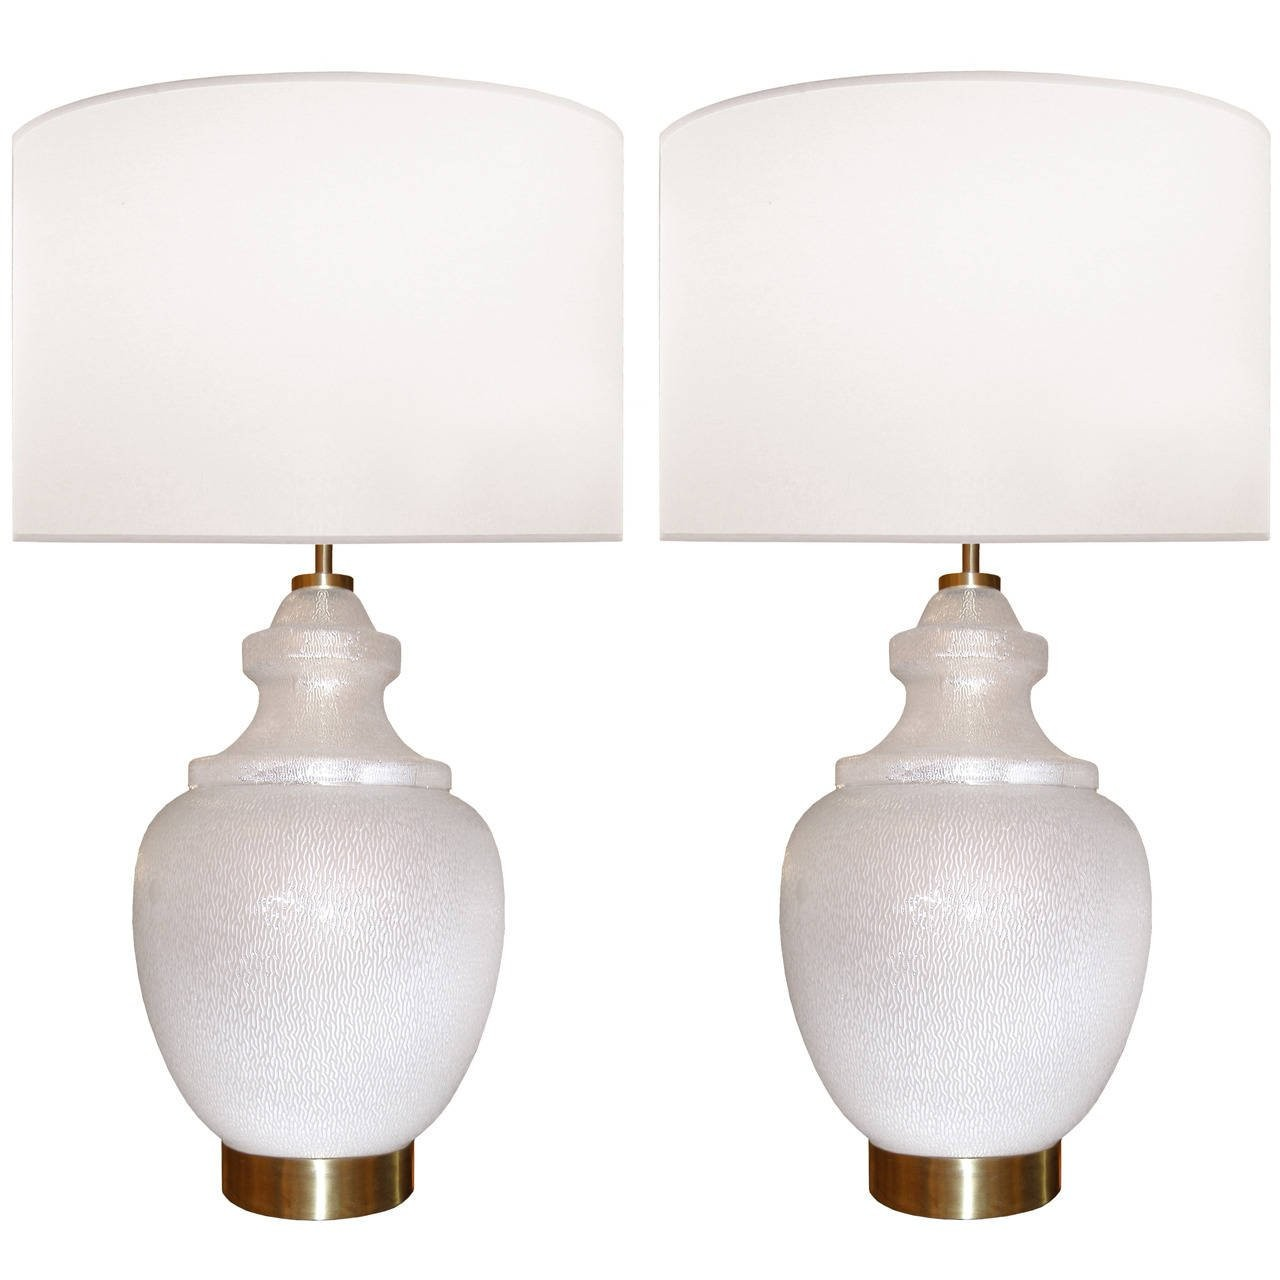 Pair of Large White Textured Glass Lamps